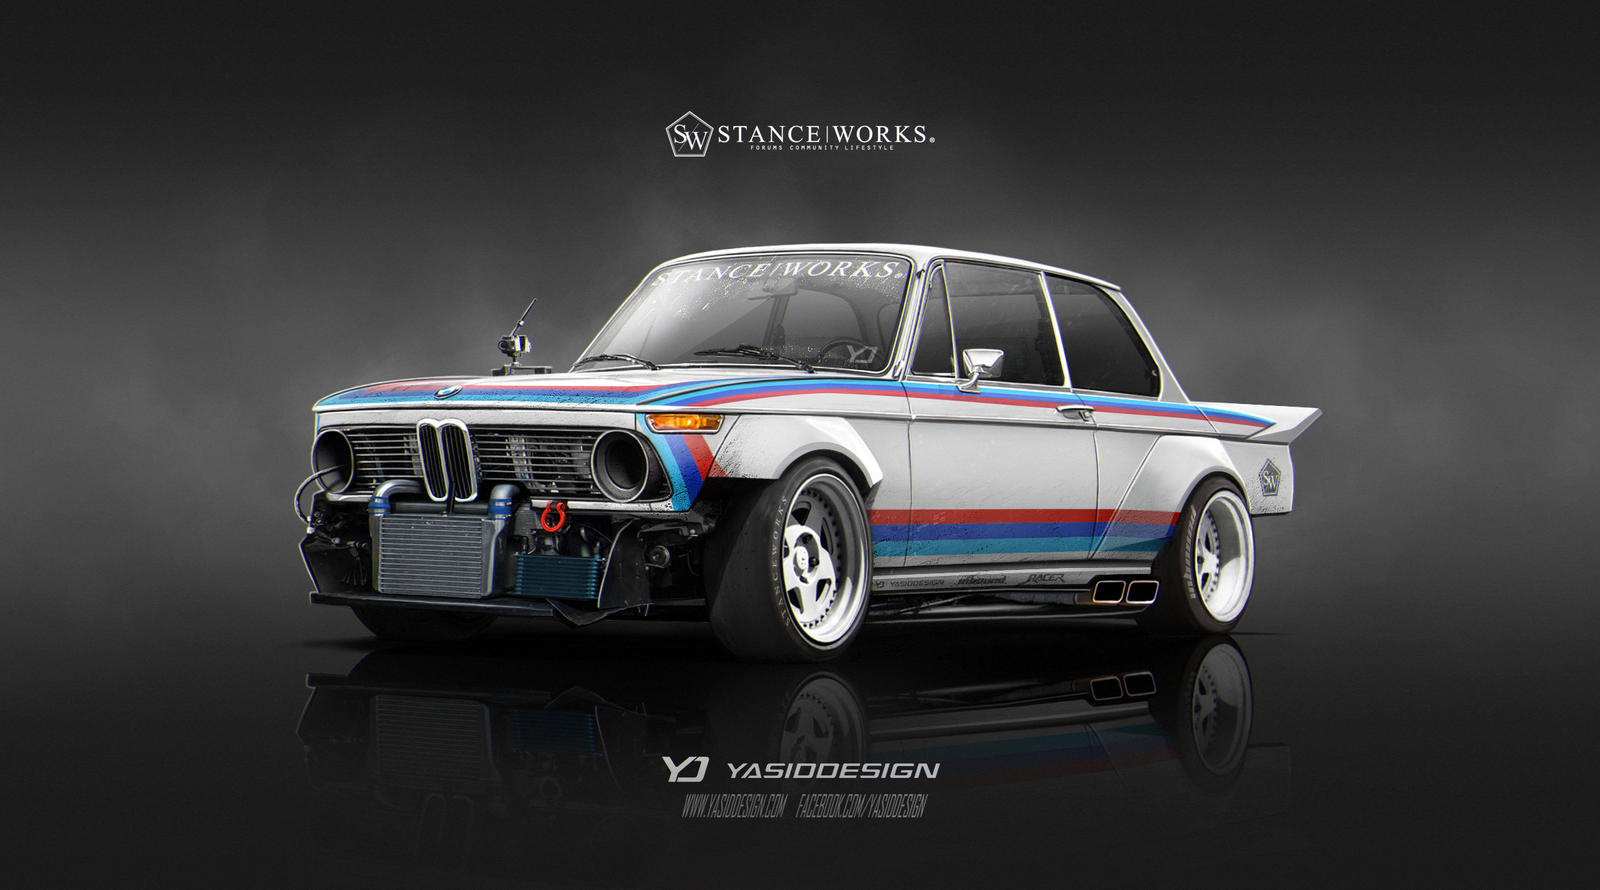 Stanceworks 1974 BMW 2002 554645695 additionally Viewtopic additionally Image 2116457 also Sujet23457 together with P ersbomber From Hell Gepfefferter Voll Carbon Audi Rs6 4g Als Flotte Familienkutsche. on bmw forum